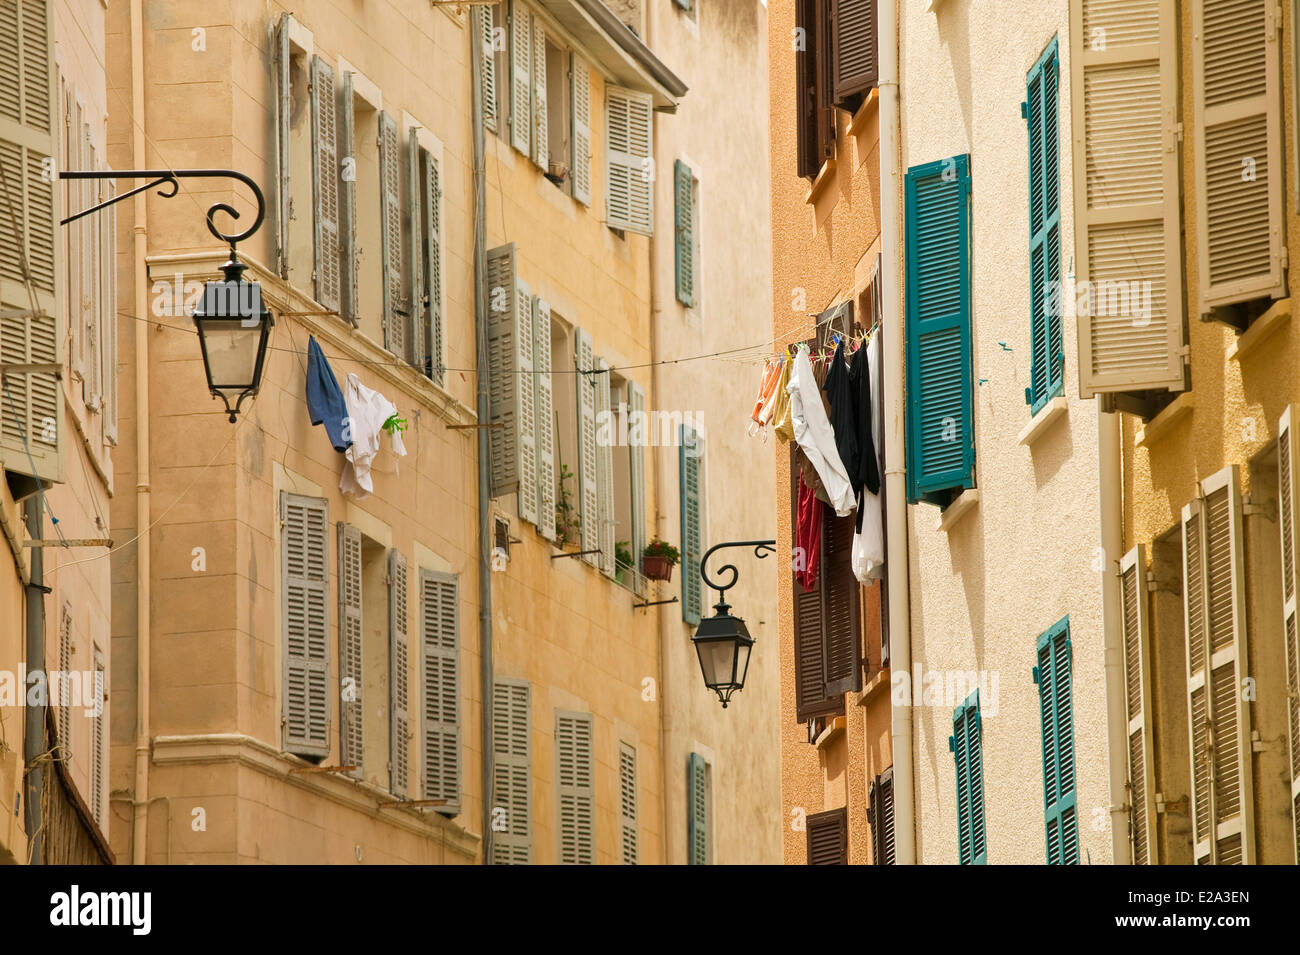 France, Bouches du Rhone, Marseille, european capital of culture 2013, 2nd district, Panier district - Stock Image